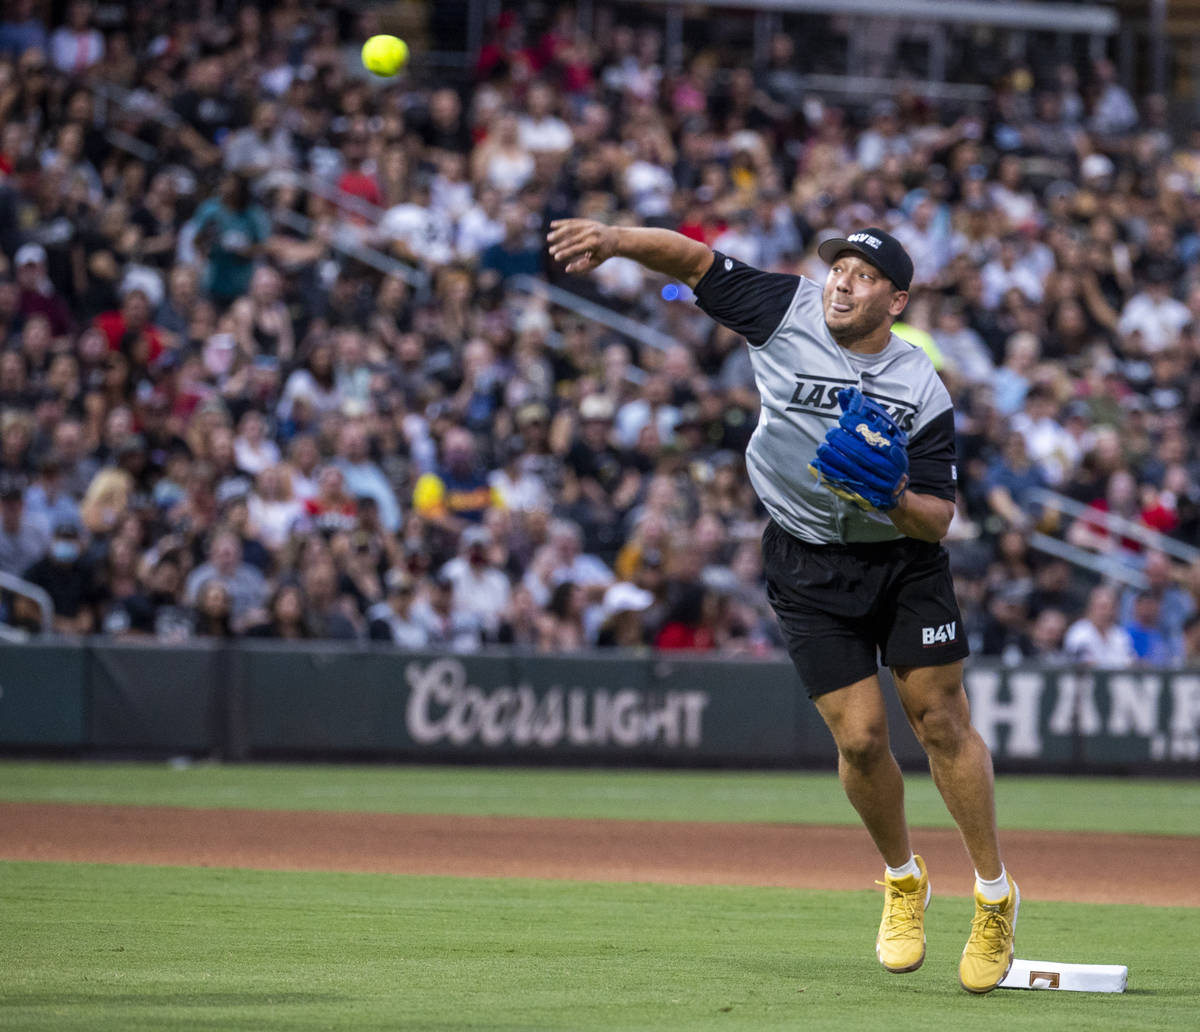 charity softball game involving players from the Vegas Golden Knights and Las Vegas Raiders at ...